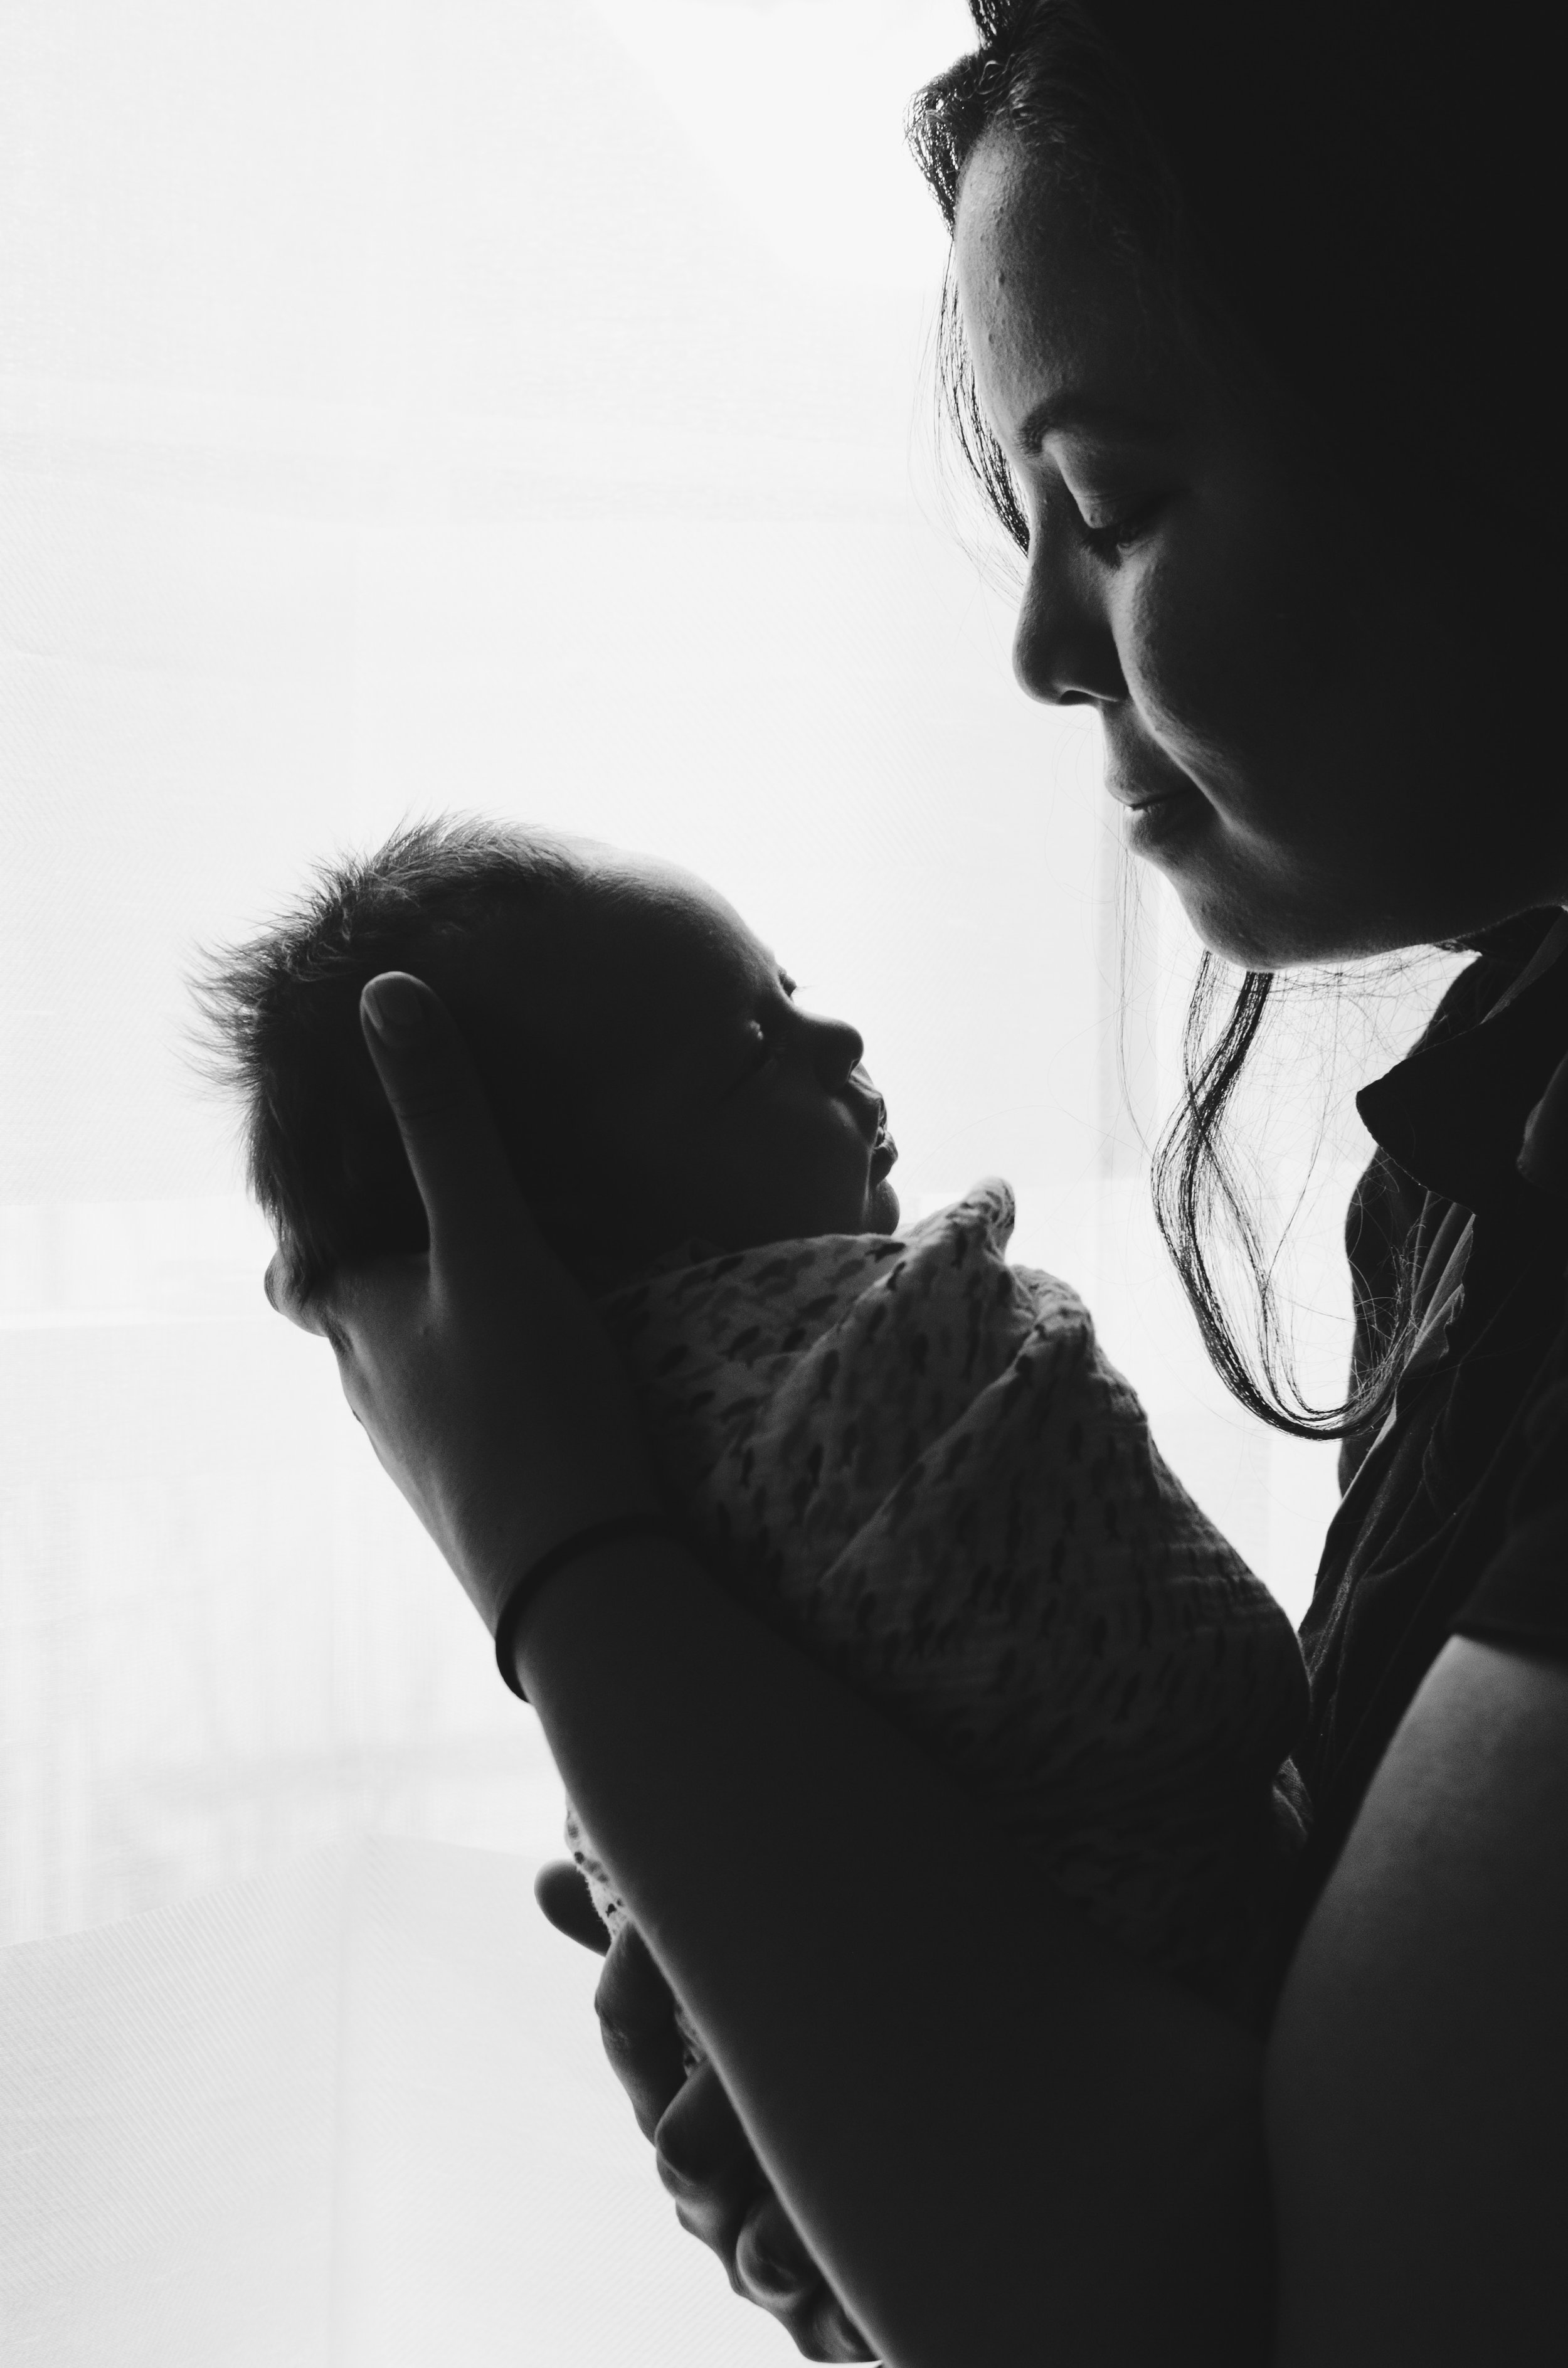 Why is postpartum care important? - Having support during the postpartum time facilitates a smooth and graceful recovery from birth.For a woman, postpartum care and wellness is :::vital::: as she adjust to her new role as Mother (even for the 2nd, 3rd, 4th….time) and also as she integrates the changes physically, emotionally, relationally, and spiritually. Around the globe there are traditions that speak to revering, celebrating, supporting, and honoring the postpartum journey. Though our modern culture has lost touch with these roots, it does not change the :FACT: that women need and deserve wrap-around, consistent care as they recover from birth and integrate (or re-integrate) life with a newborn. Companionship, herbs, nourishing food, and rest are vital to her process. During this special time she has the opportunity to restore her body to optimal, vibrant health for now and for the rest of her life.